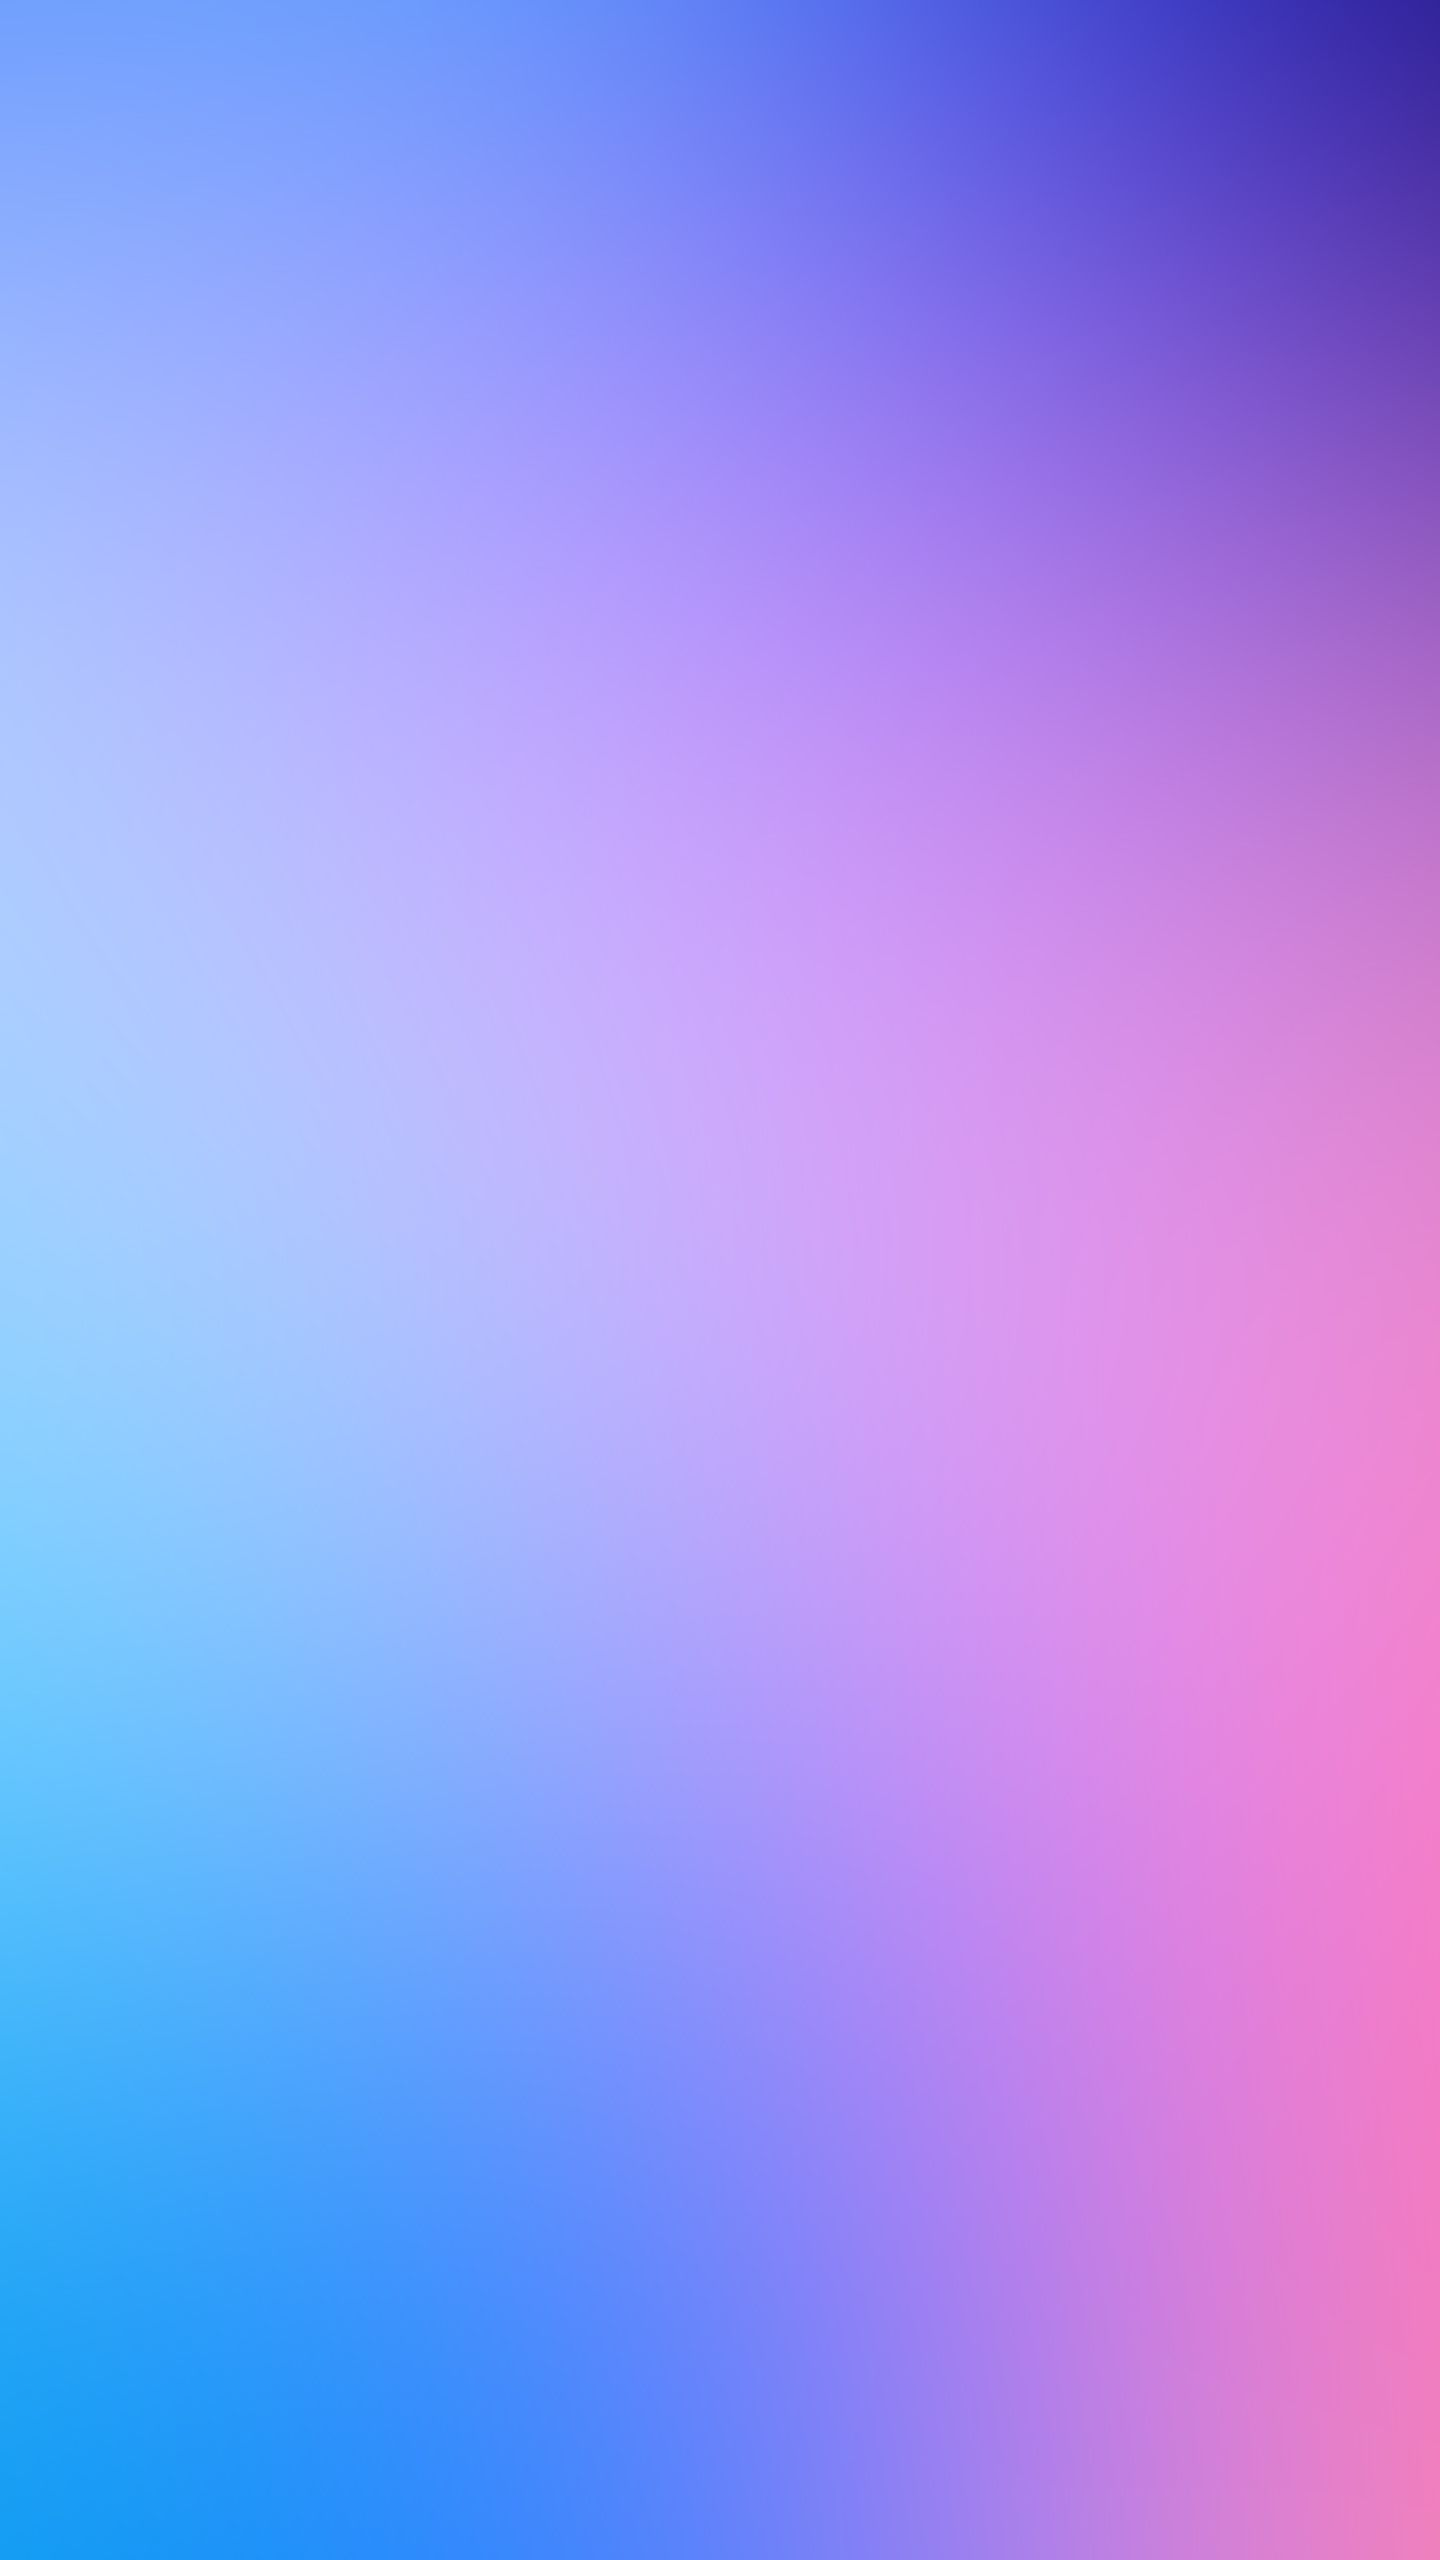 Free Minimalistic Wallpaper For Screens Aspect Ratio 16 9